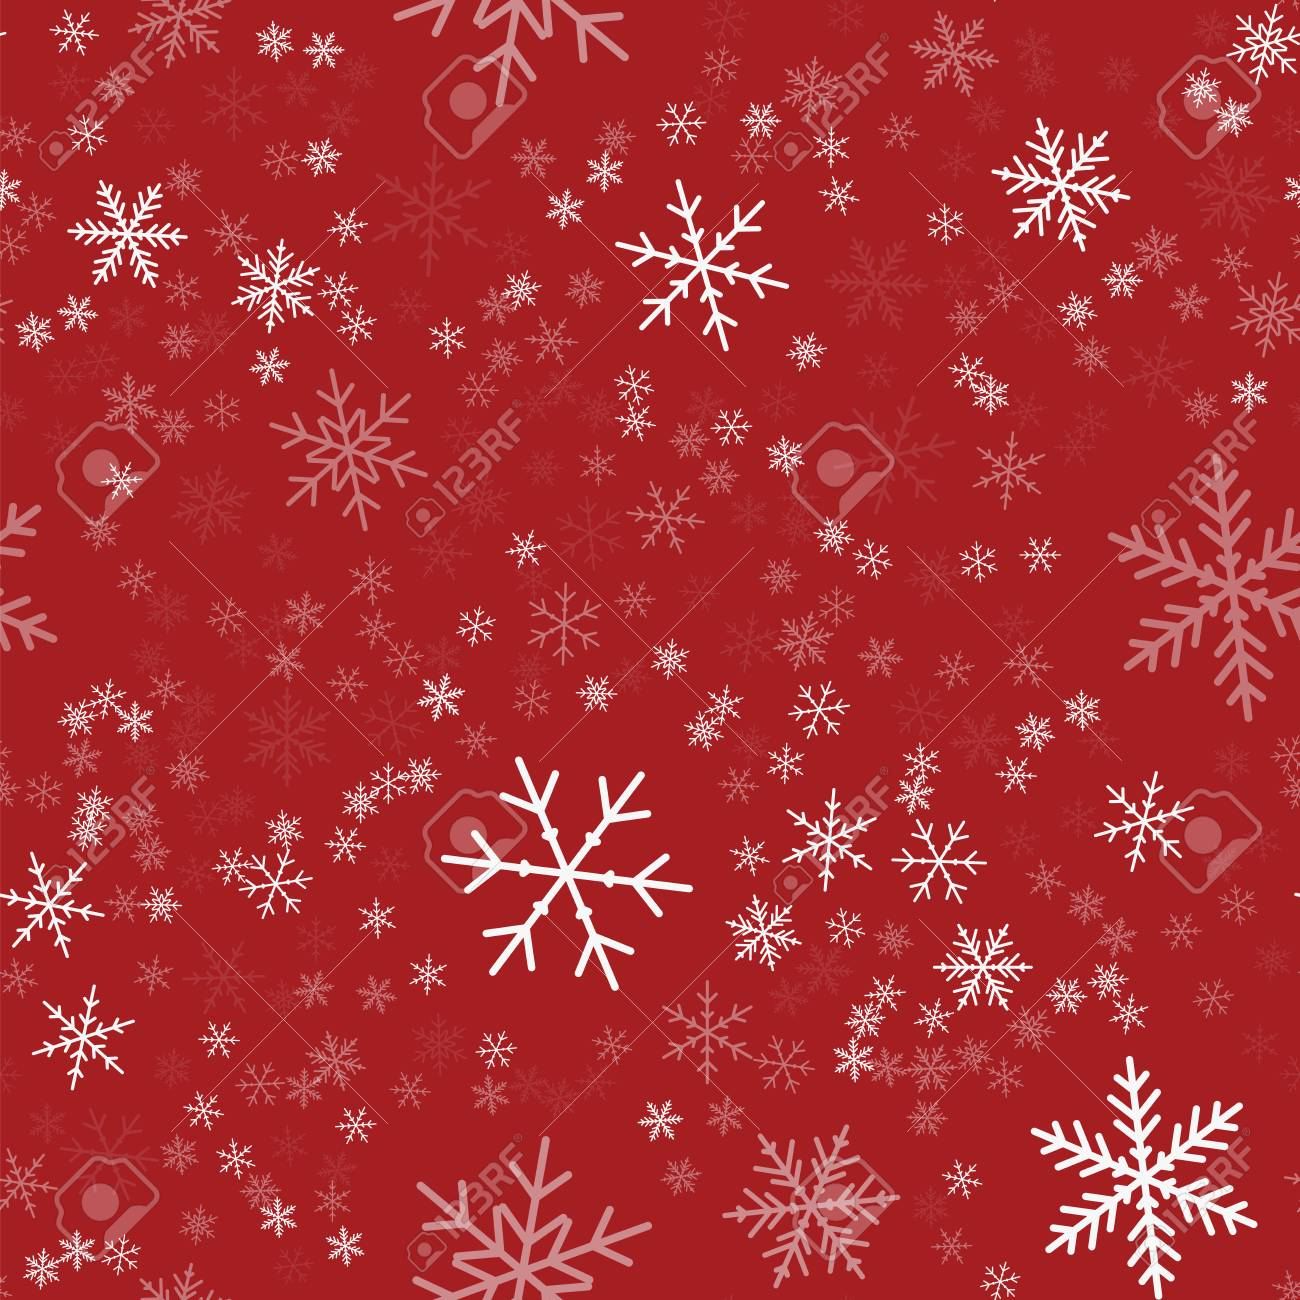 Red Christmas Background.White Snowflakes Seamless Pattern On Red Christmas Background